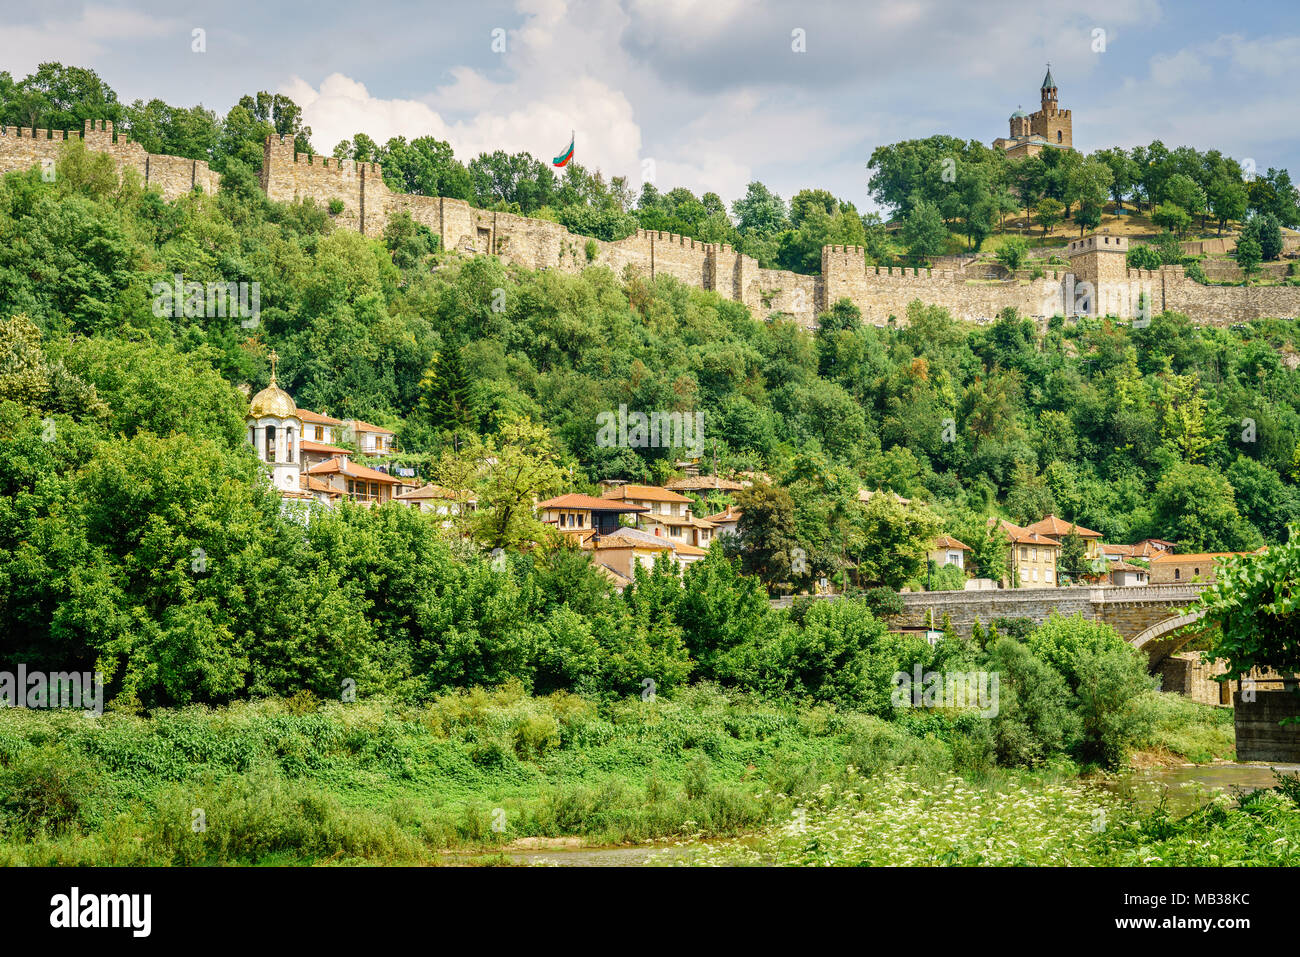 Tsarevets hill and fortress in Veliko Tarnovo, Bulgaria Stock Photo